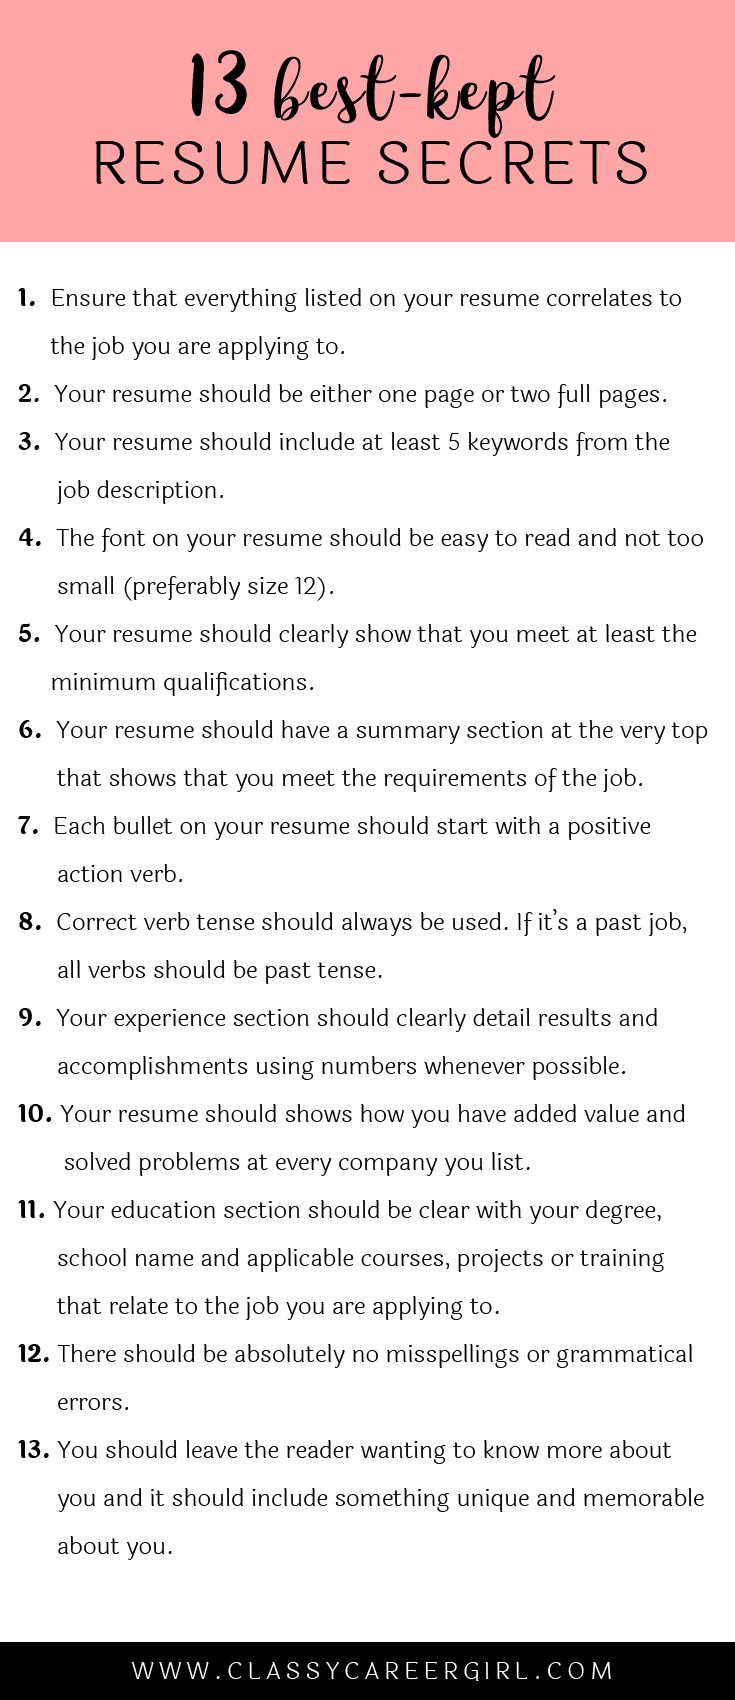 Opposenewapstandardsus  Terrific  Ideas About Resume On Pinterest  Cv Format Resume Cv And  With Marvelous Some Hiring Managers Will Toss Your Resume Out If You Dont Know These  With Comely Dispatcher Resume Also How To Write A Job Resume In Addition Resume Engine And Cover Letter Vs Resume As Well As Resume Objective For Customer Service Additionally Scrum Master Resume From Pinterestcom With Opposenewapstandardsus  Marvelous  Ideas About Resume On Pinterest  Cv Format Resume Cv And  With Comely Some Hiring Managers Will Toss Your Resume Out If You Dont Know These  And Terrific Dispatcher Resume Also How To Write A Job Resume In Addition Resume Engine From Pinterestcom